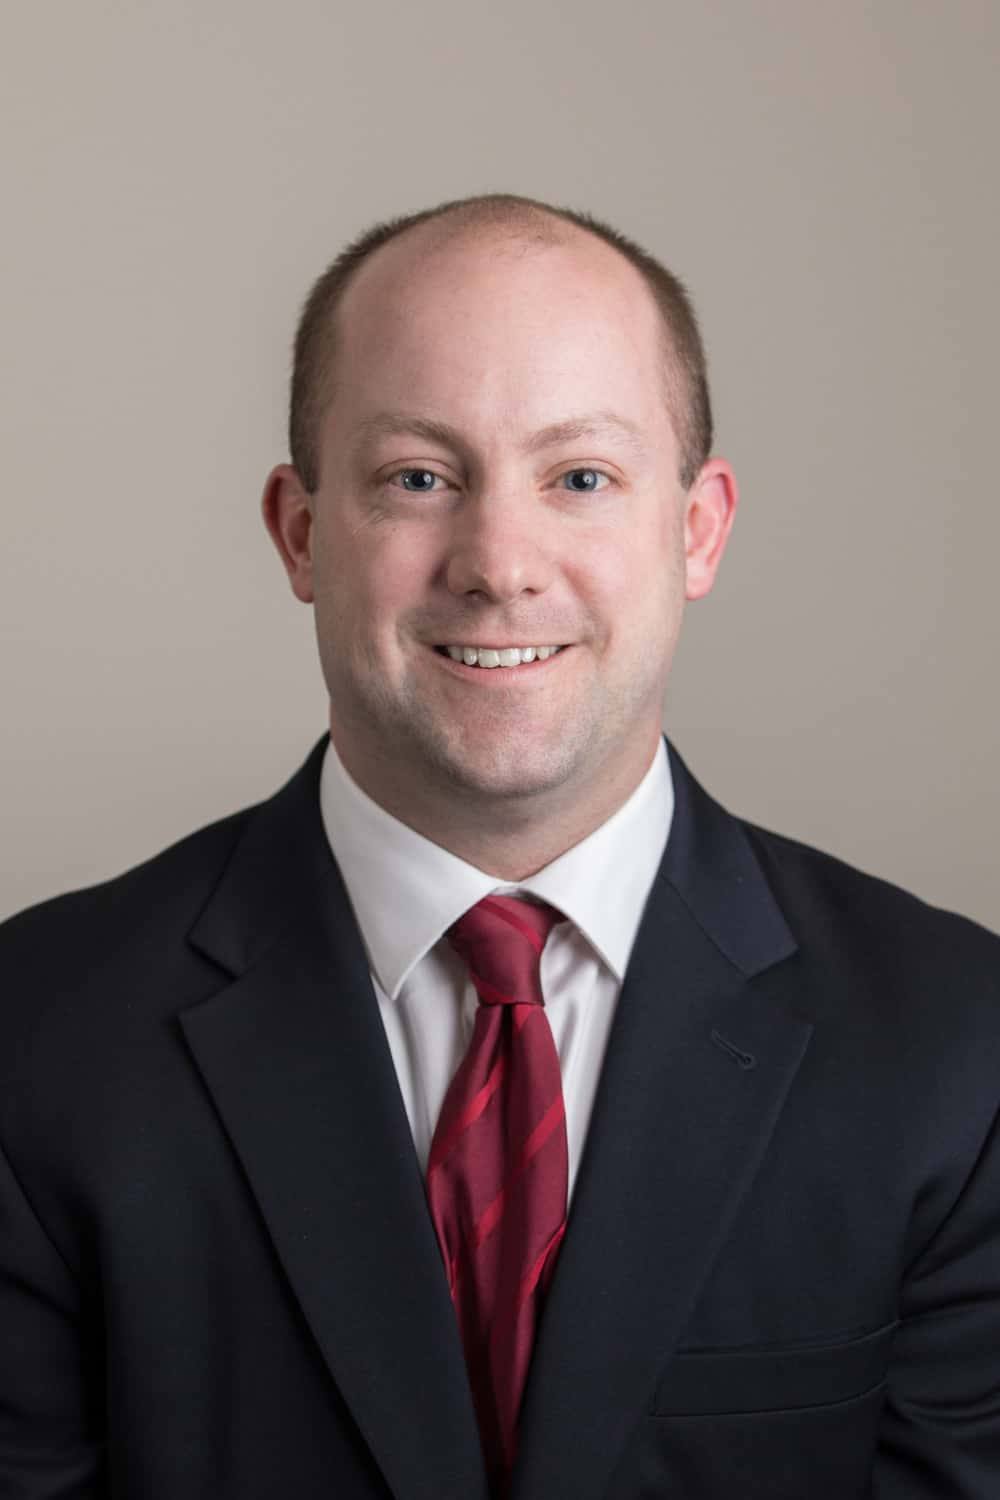 Florio Perrucci Partner, Seth Tipton, Comments on New Jersey Adult-Use Cannabis